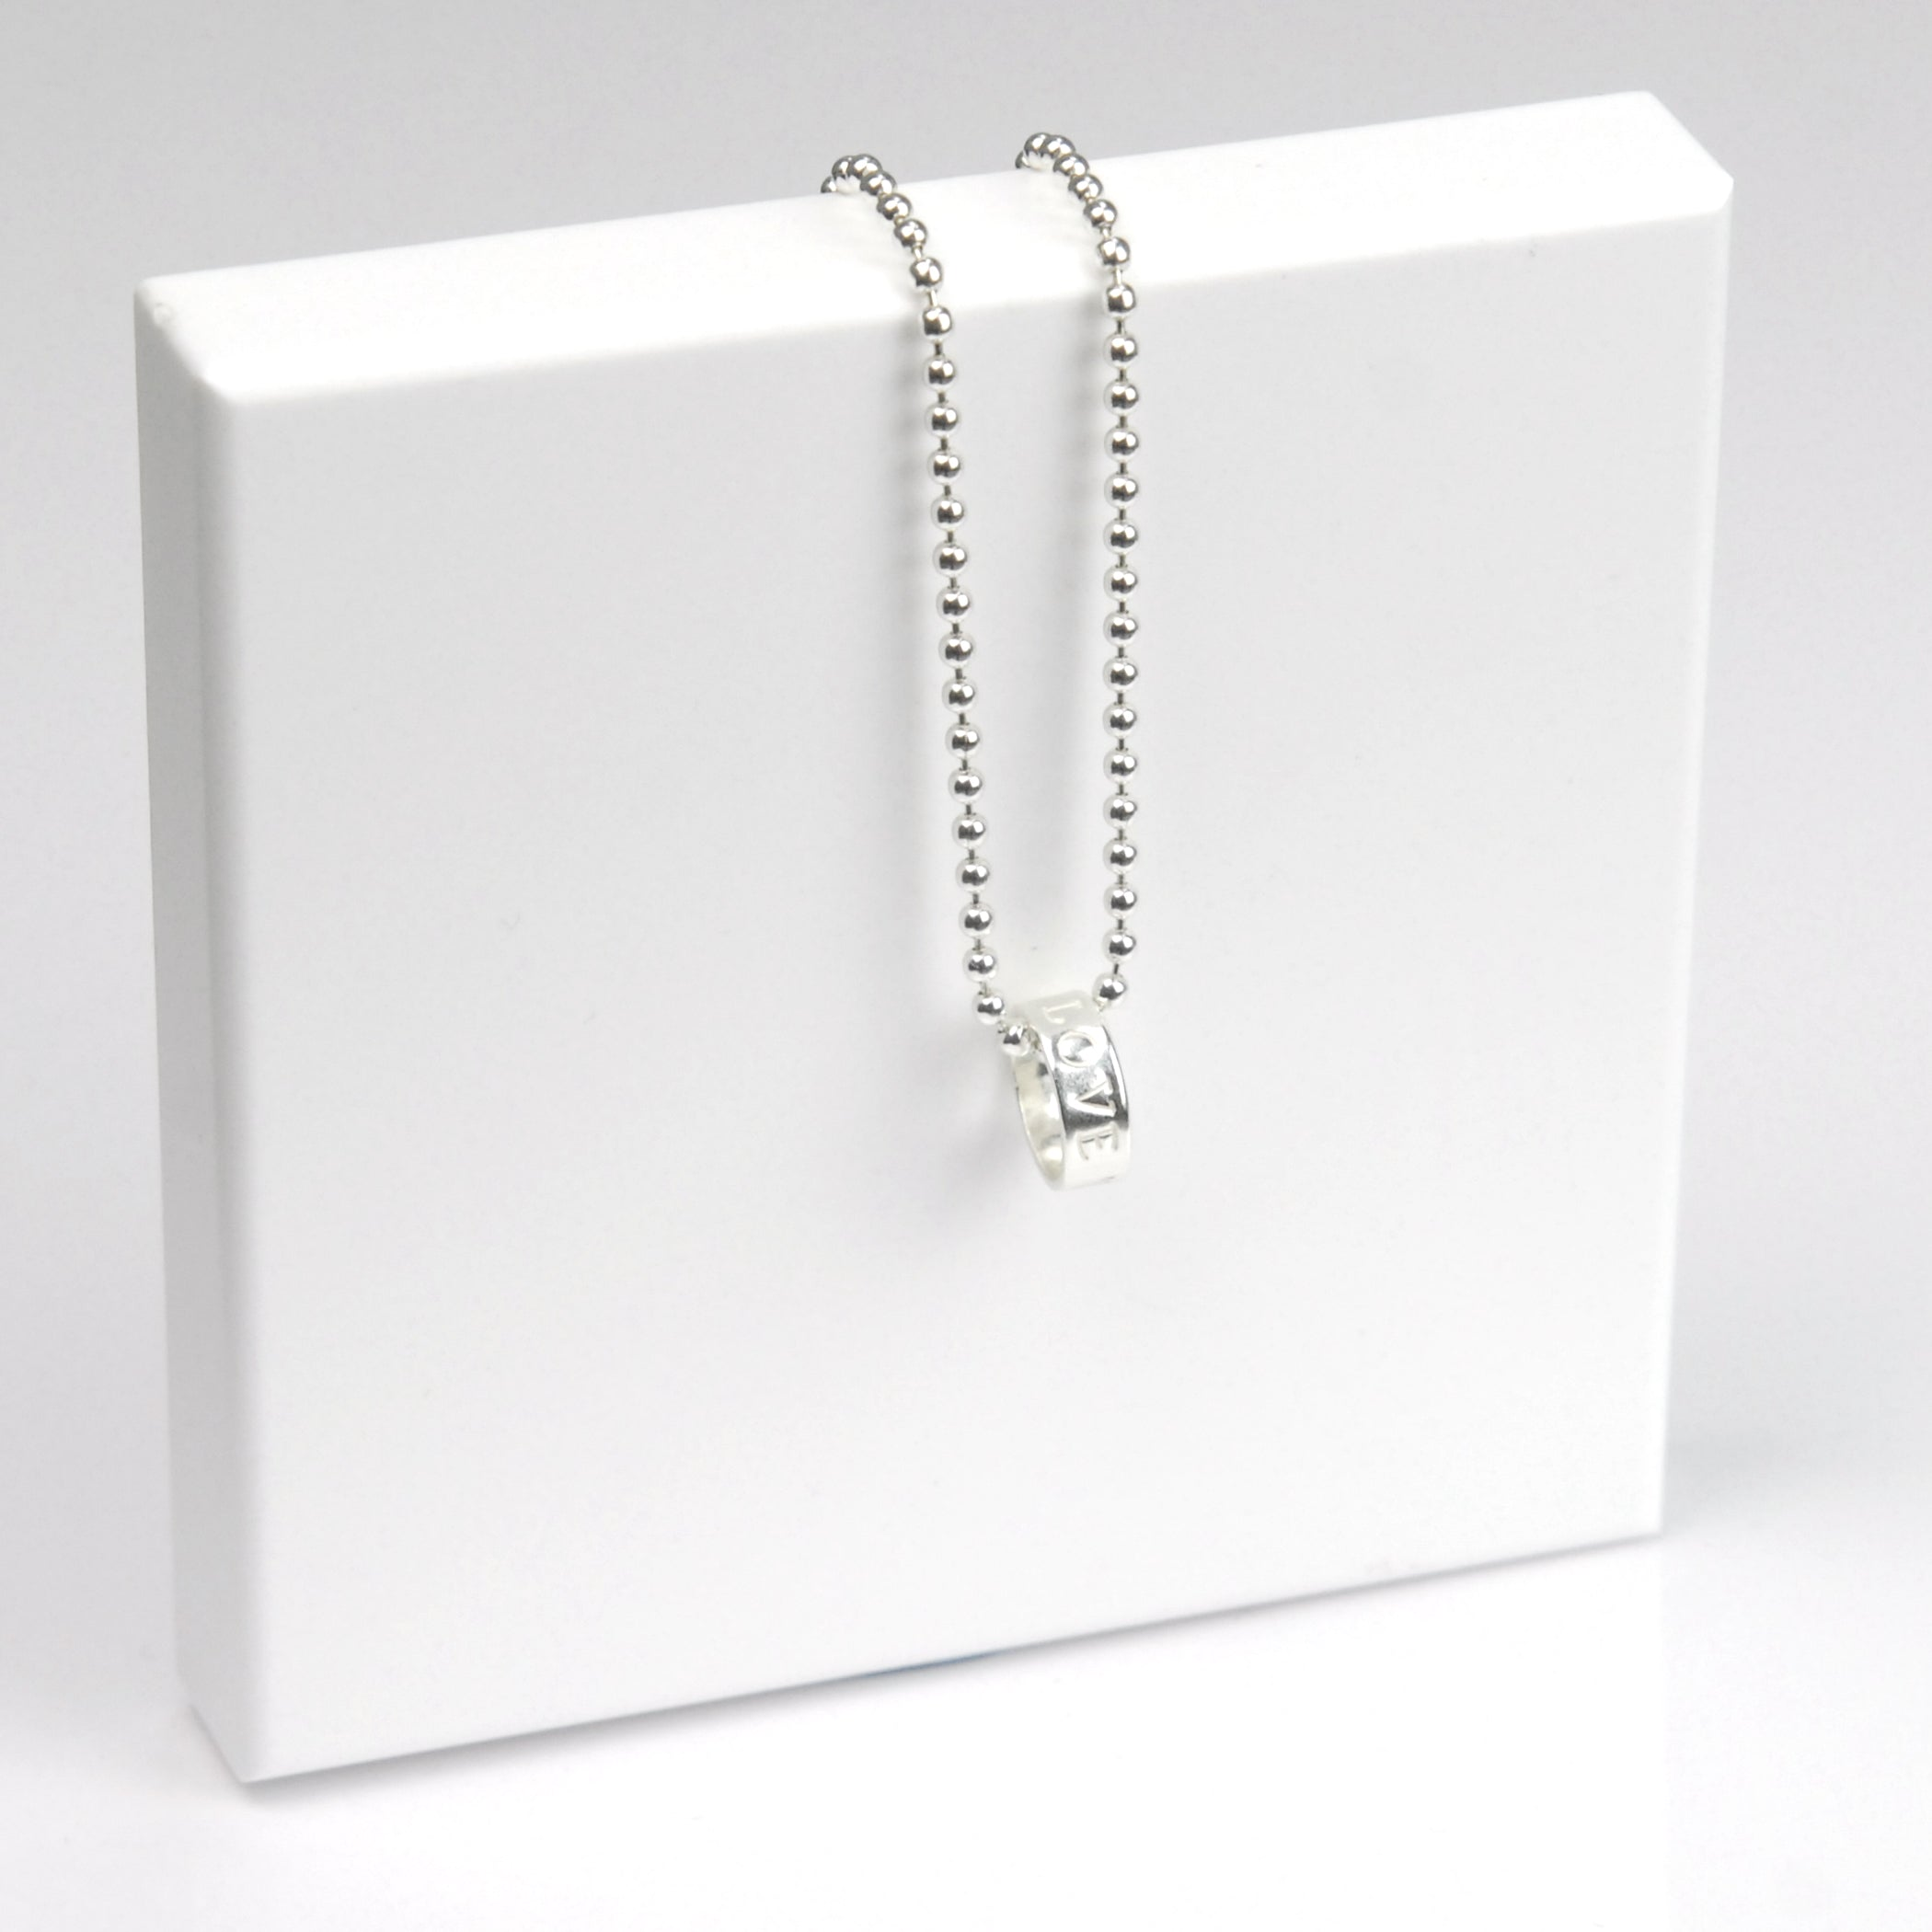 Belle & Bee Sterling Silver Ball Chain Necklace  with Personalised Love Loop